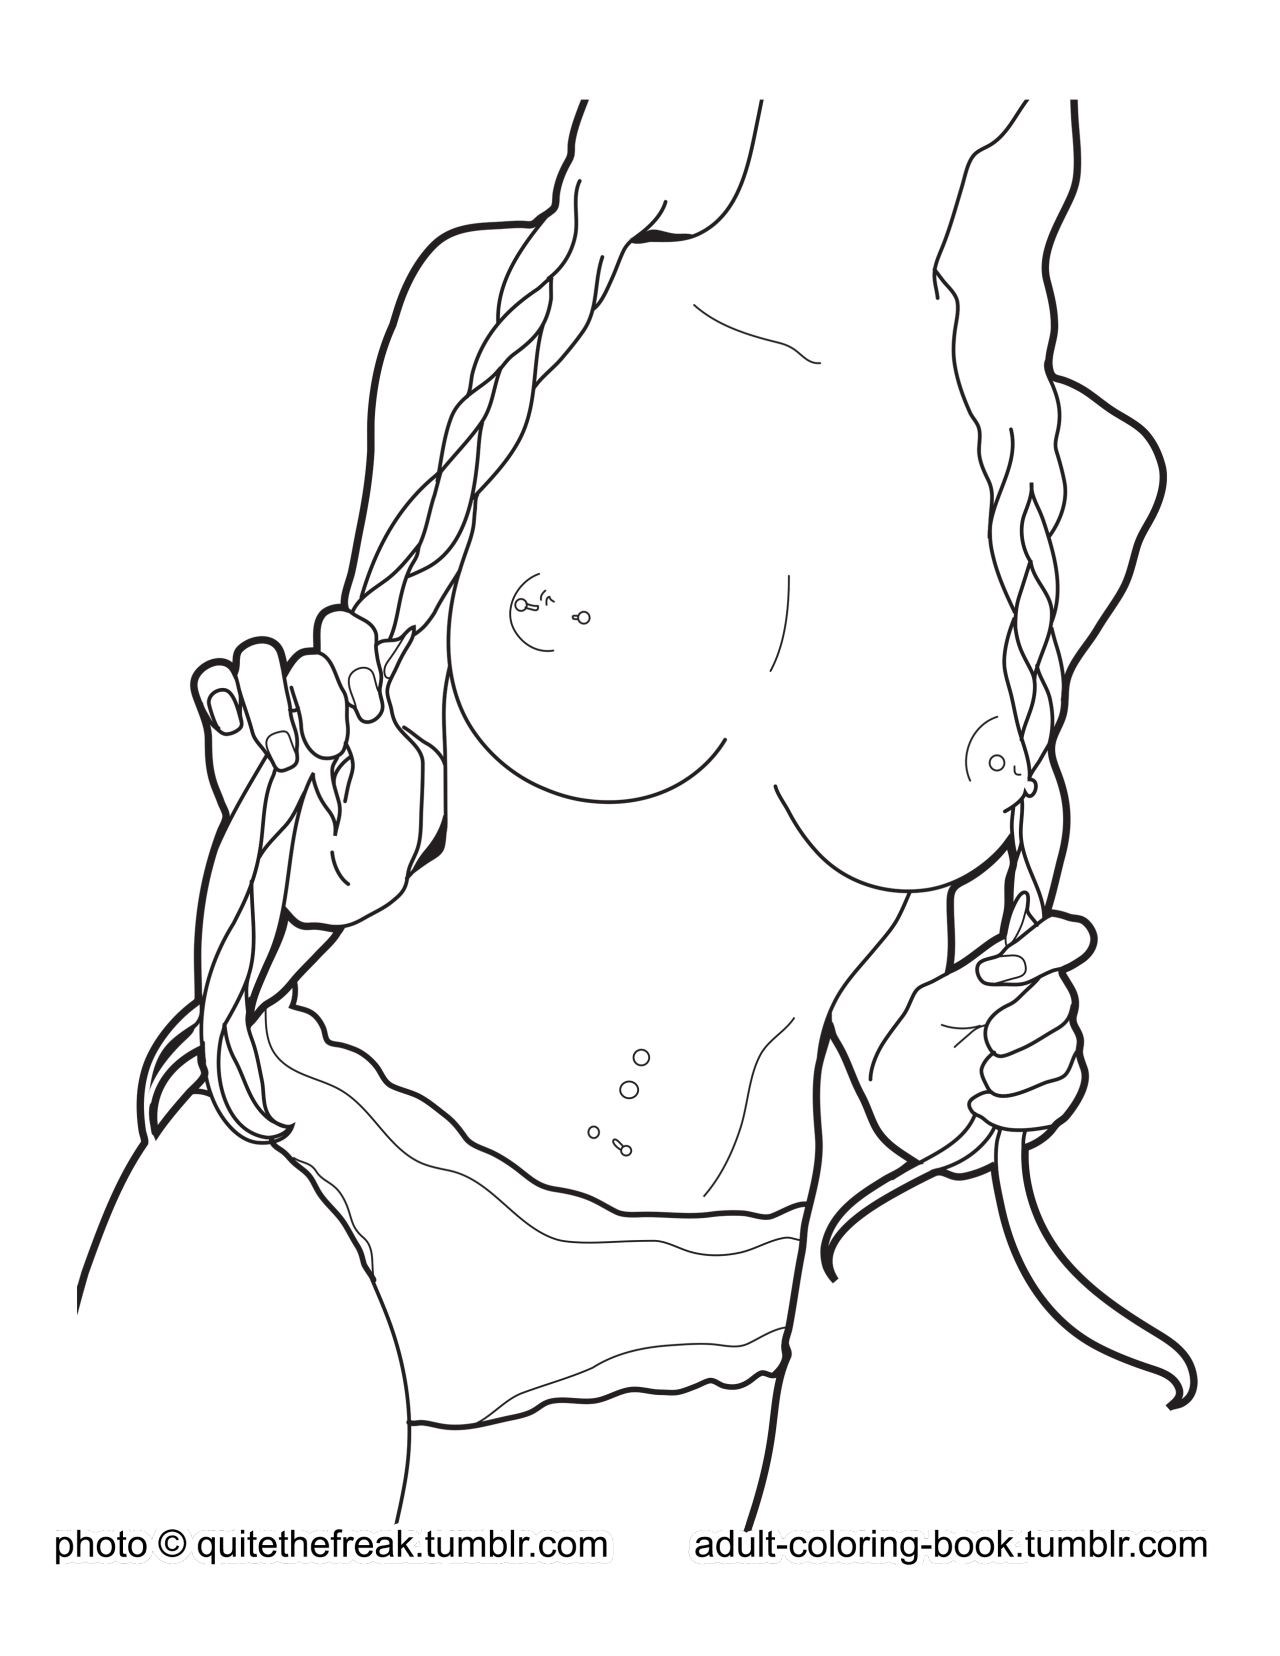 Porn Coloring Pages : coloring, pages, Adult, Coloring